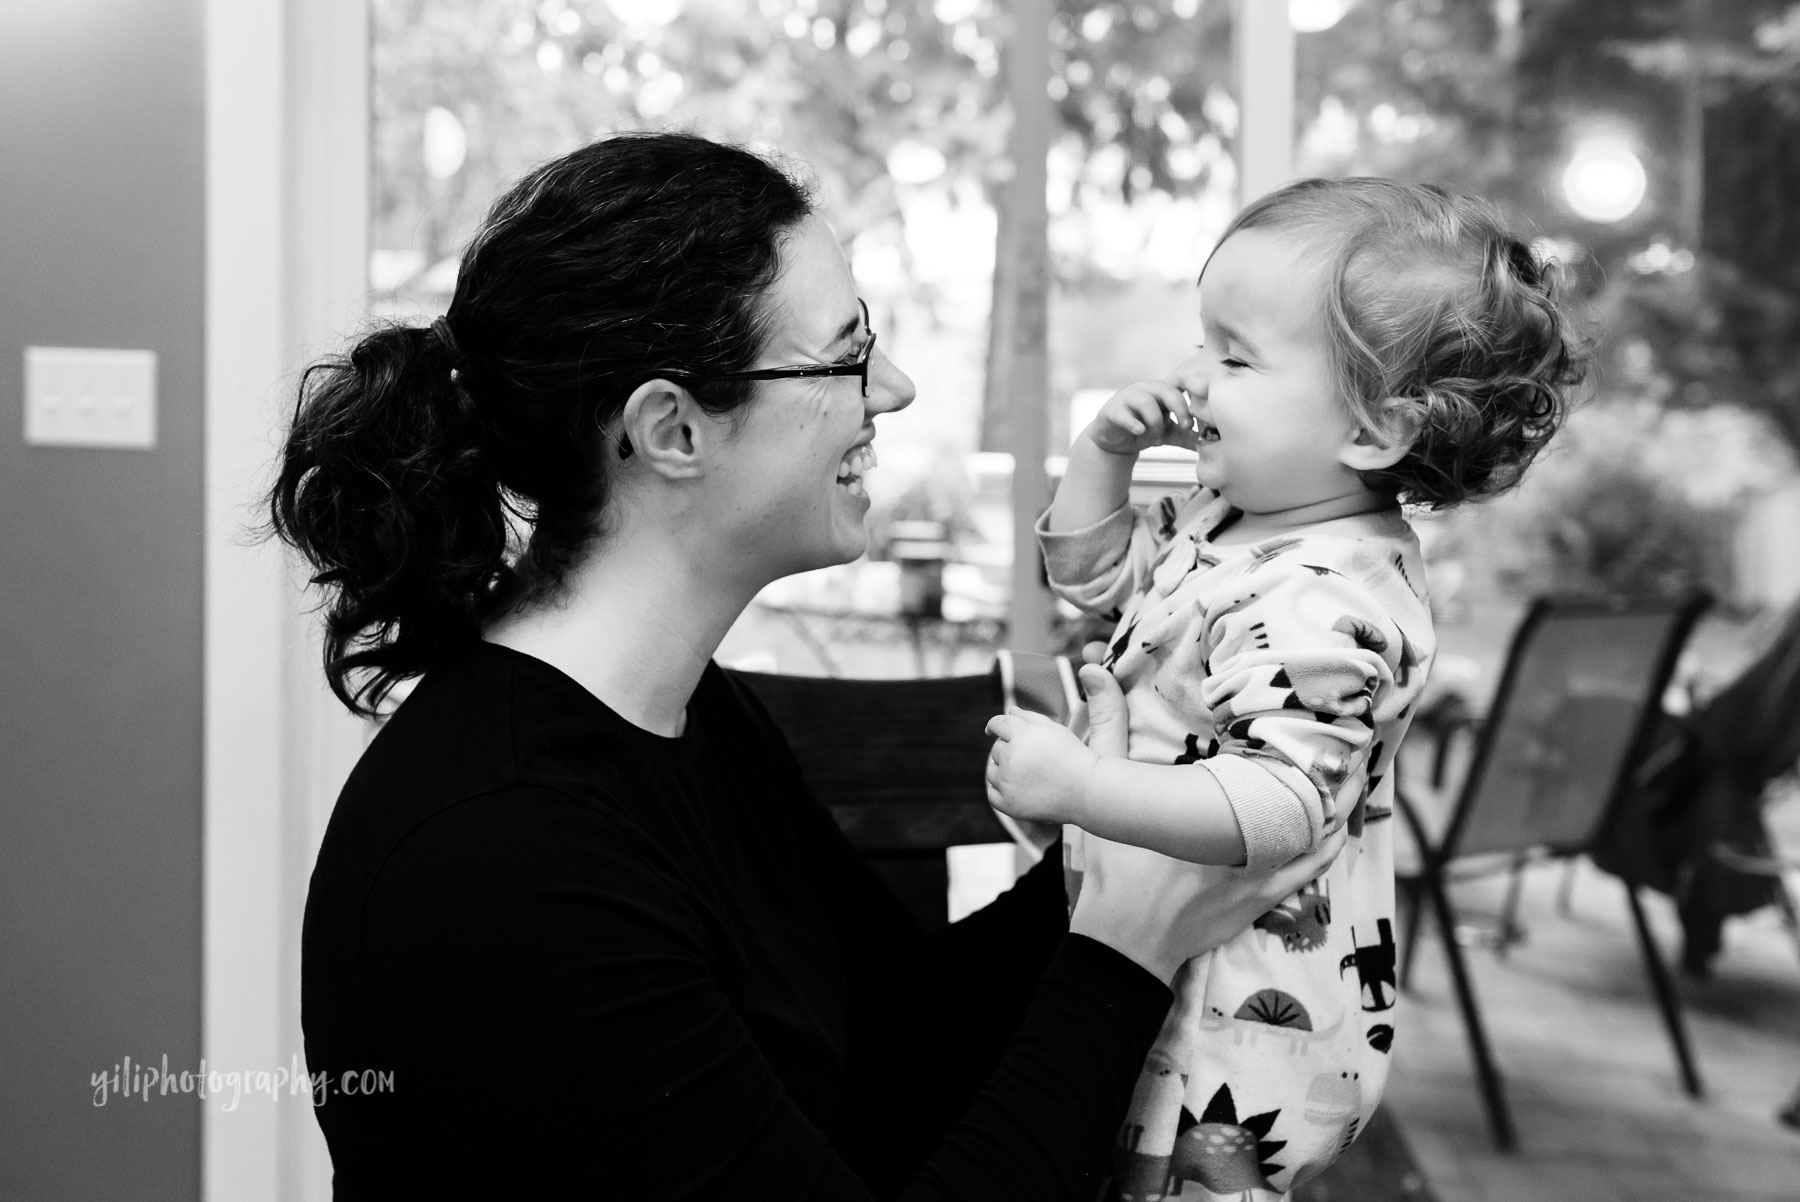 Mom smiling and laughing with toddler girl at home